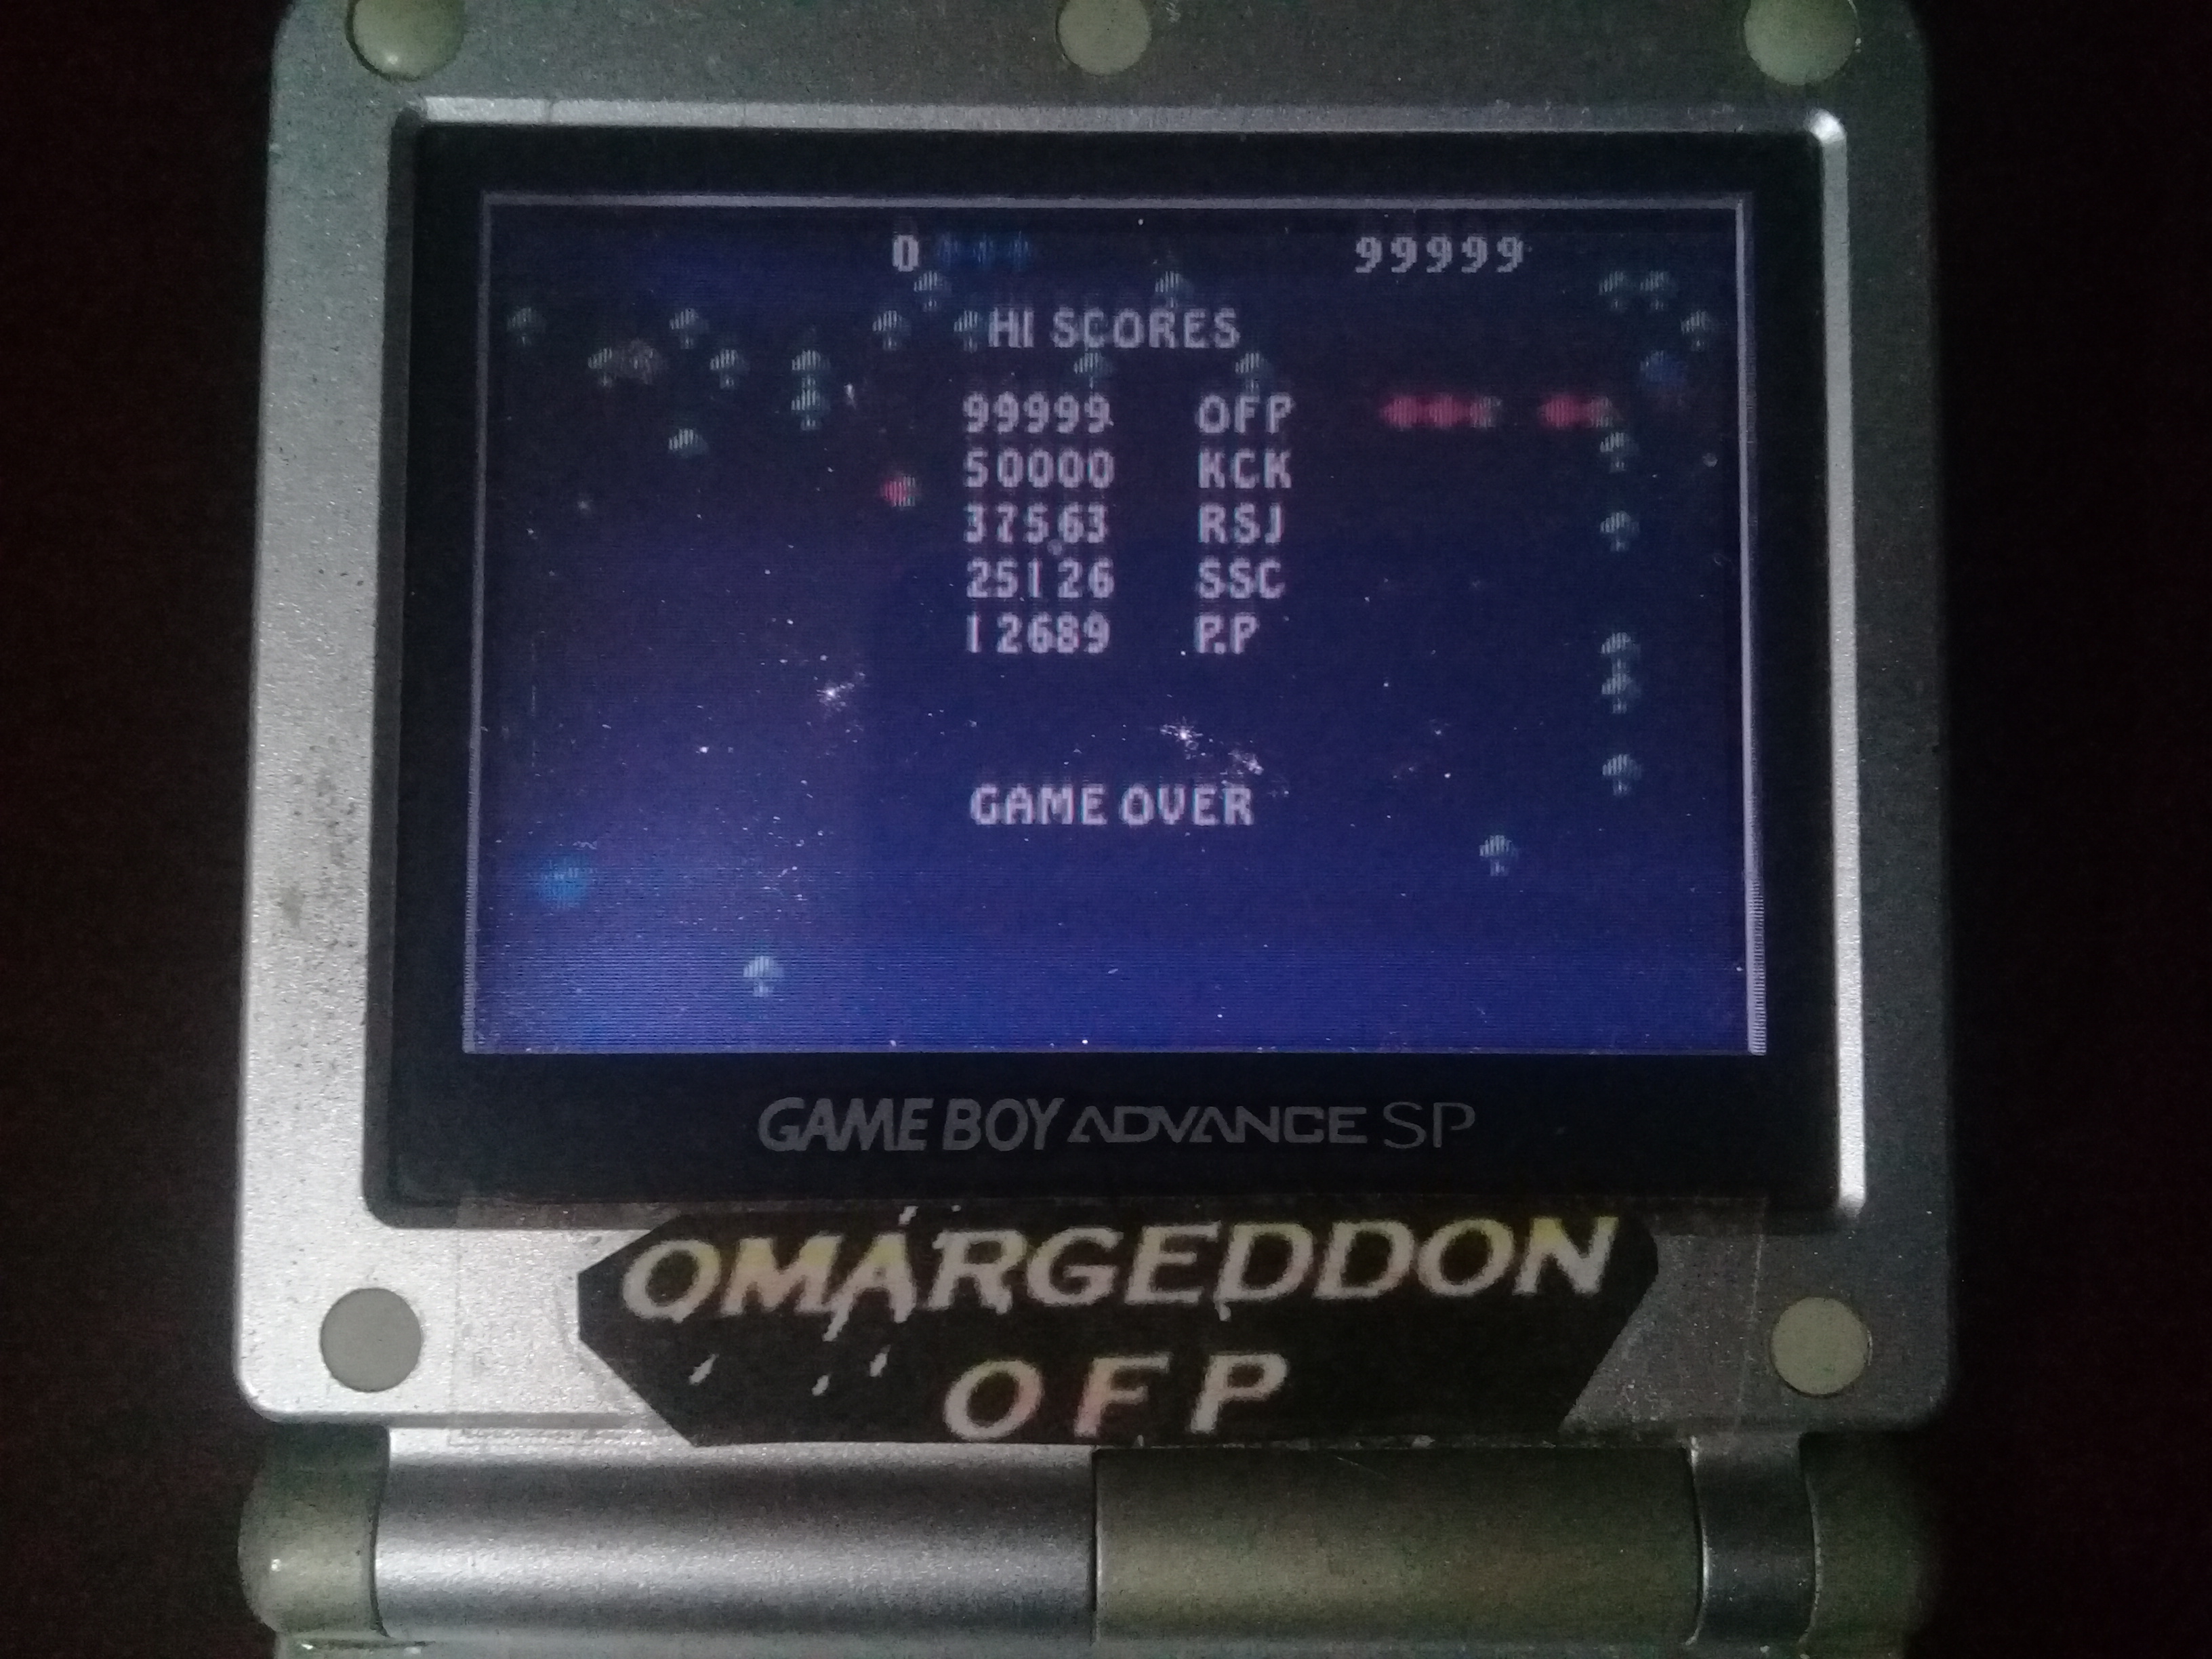 omargeddon: Centipede [Easy] (GBA) 99,999 points on 2020-04-19 00:34:59